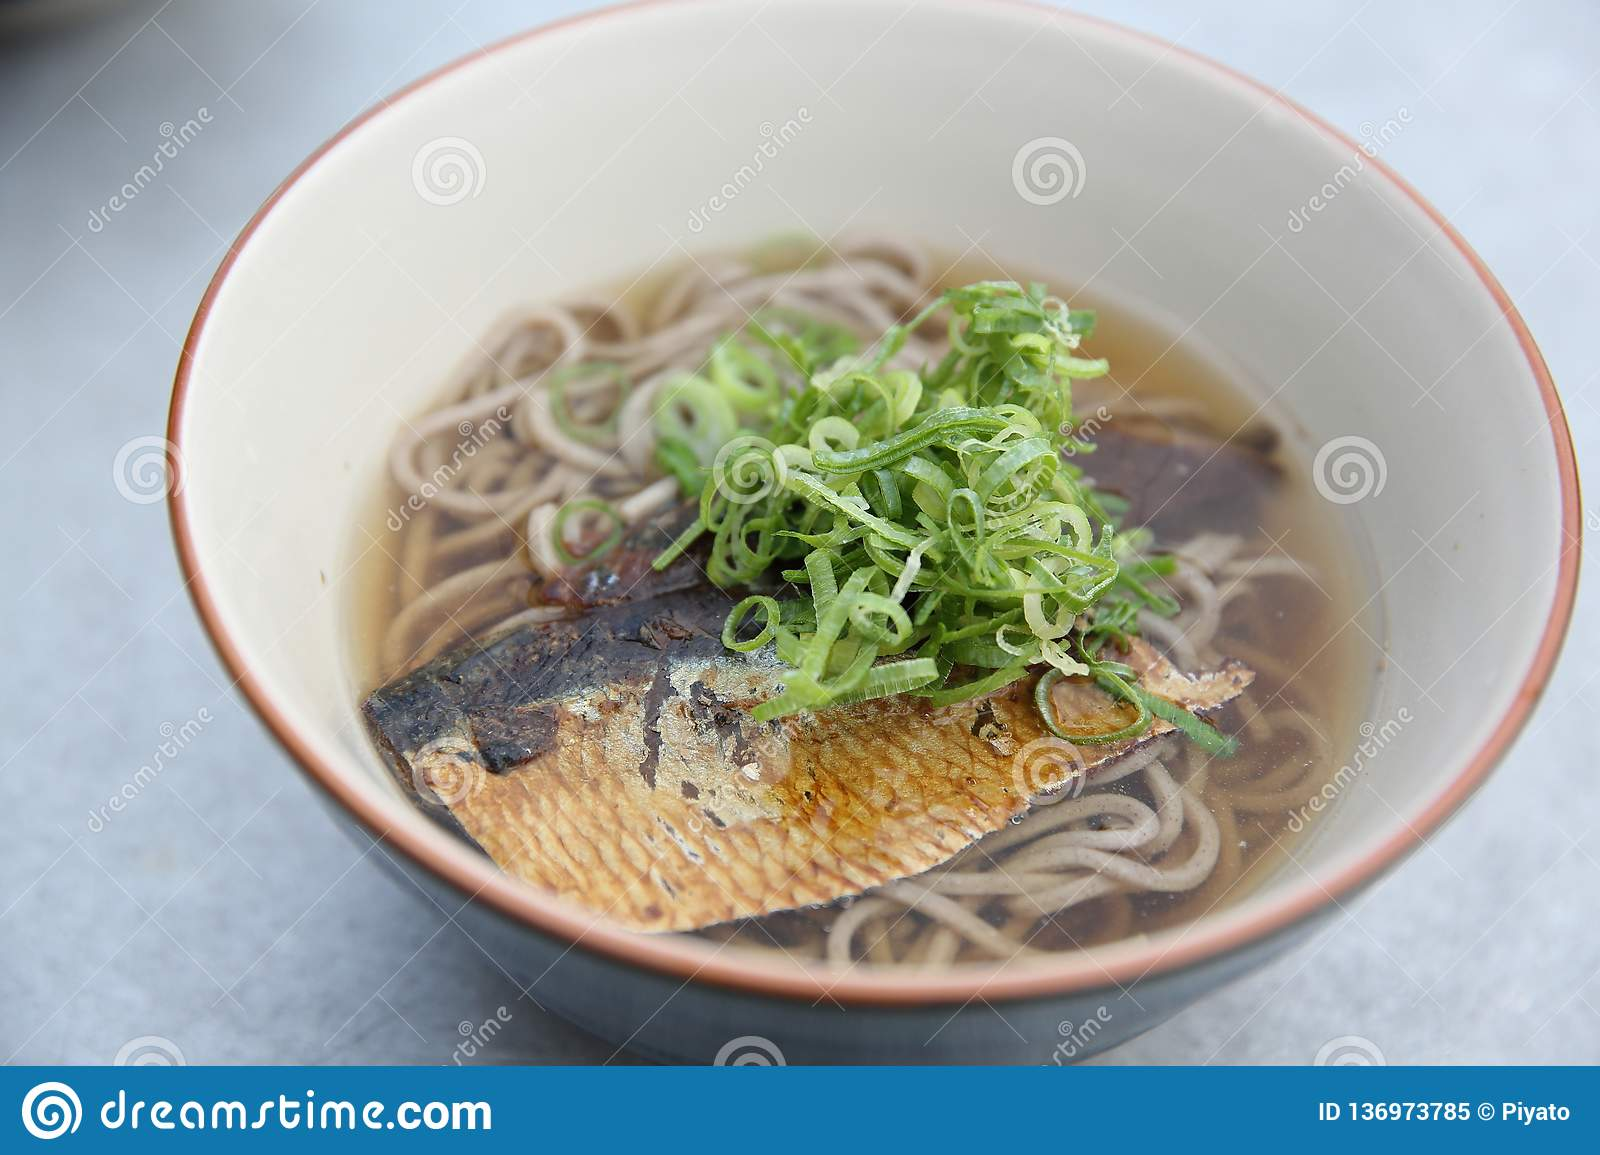 Hot Soba Noodle With Mackerel Fish Japanese Noodle Food